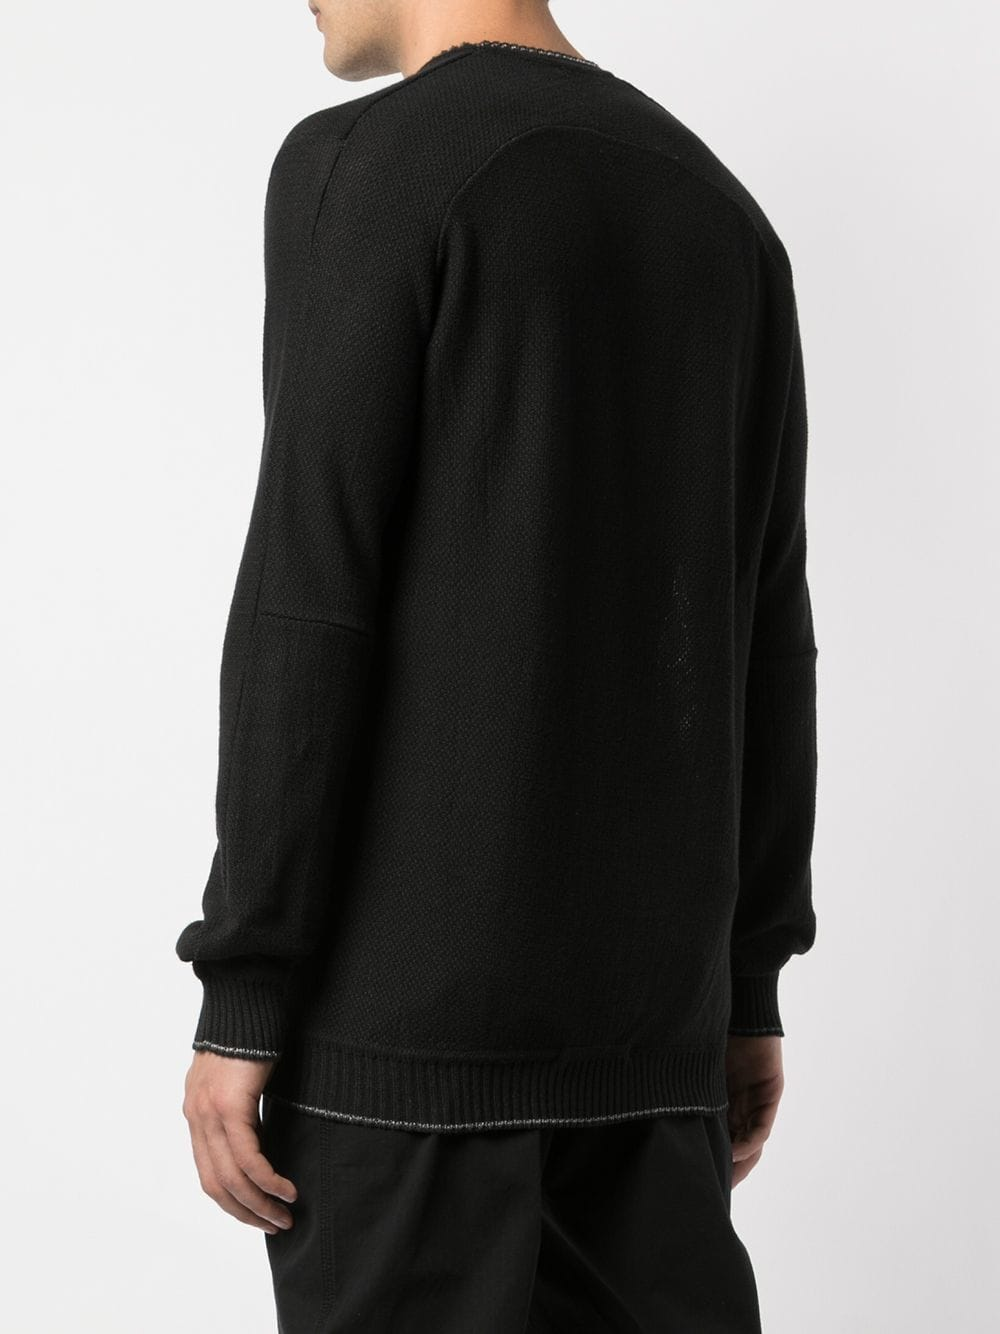 TAICHI MURAKAMI MEN RAMIE COTTON RASCHEL LIGHT SWEATER